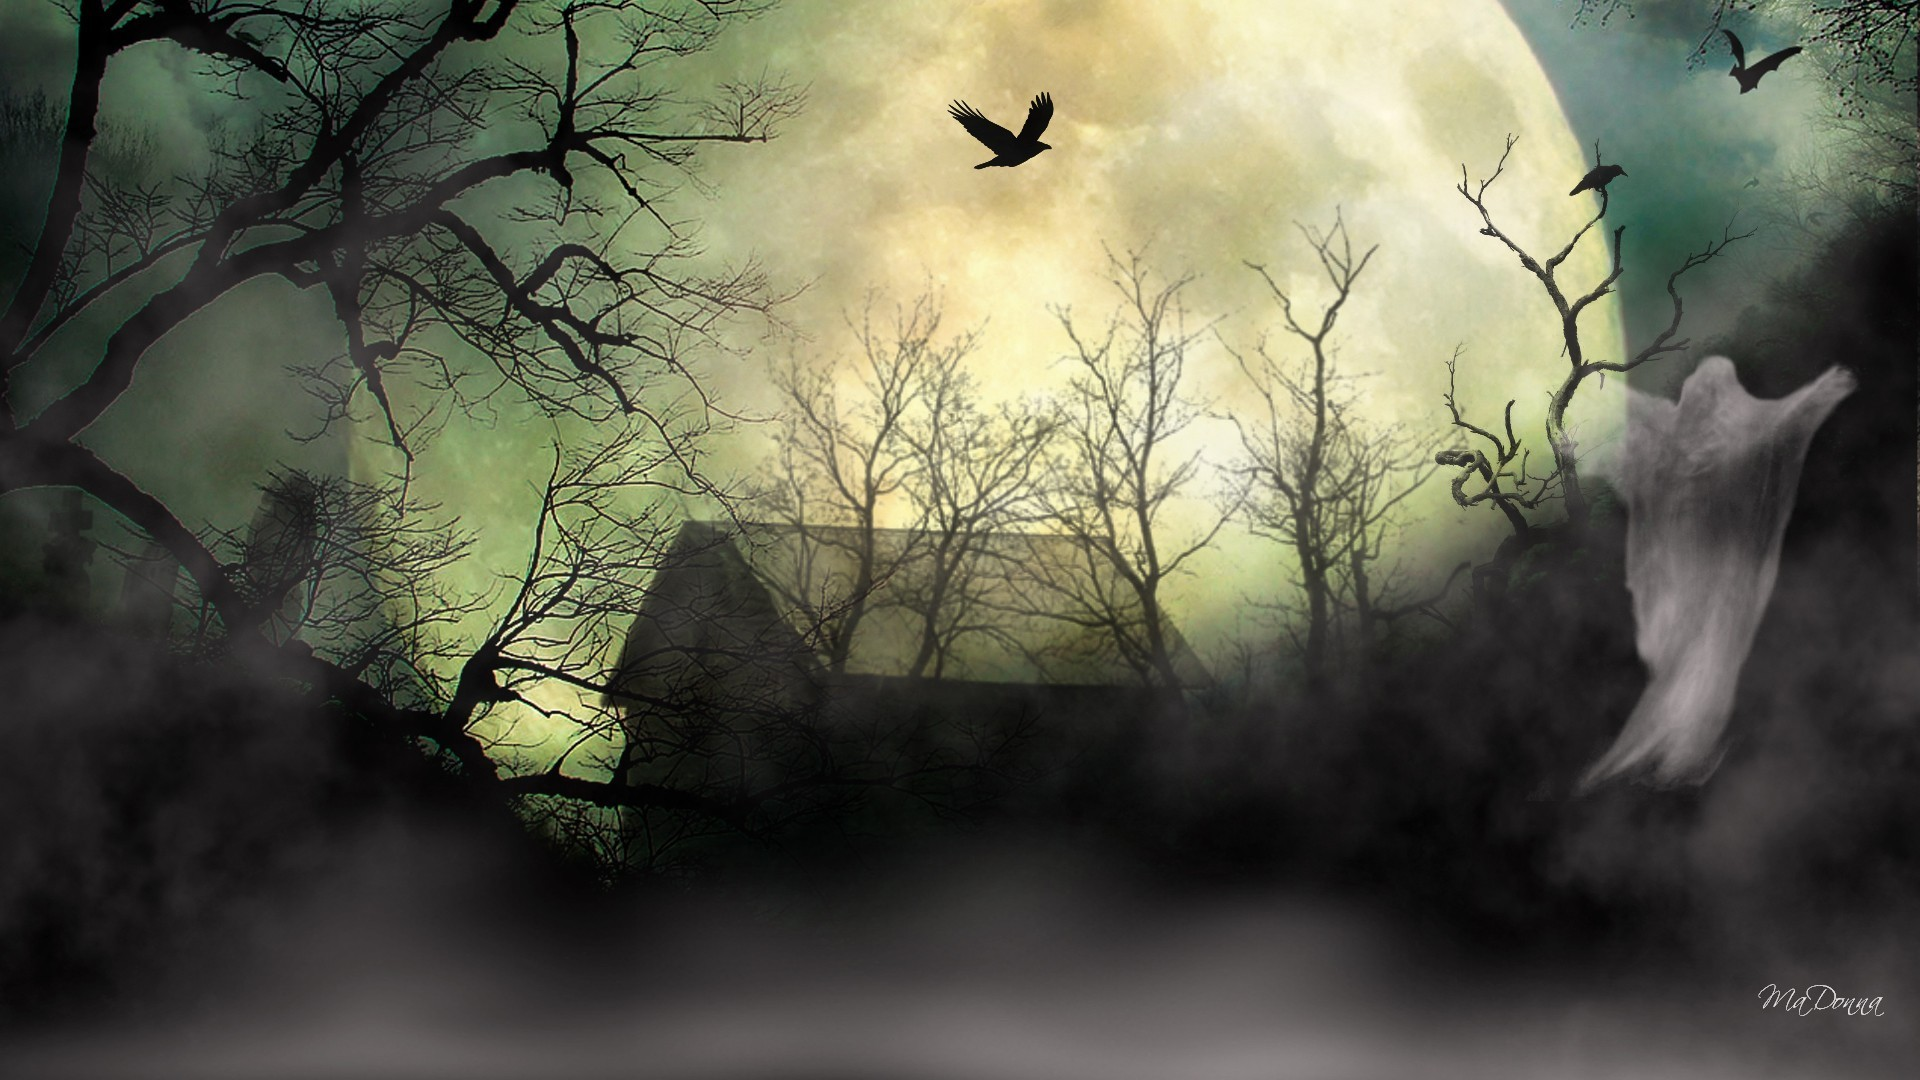 Res: 1920x1080, Horrible Tag - Dreadful Mist Spooky Weird Halloween Uncommon Trees Full  Barn Quaint Enigmatic Fearsome Horrible